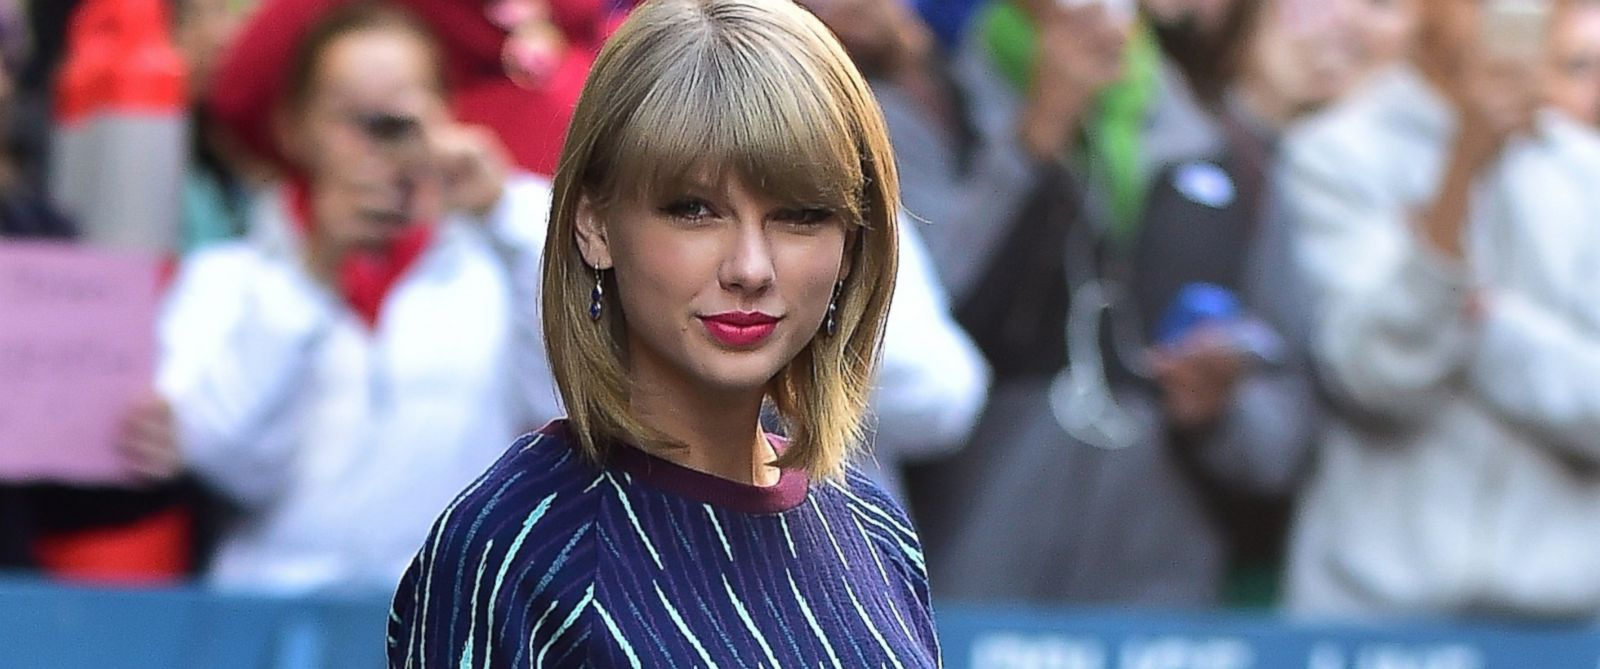 PHOTO: Taylor Swift is seen, Oct. 27, 2014, in New York.